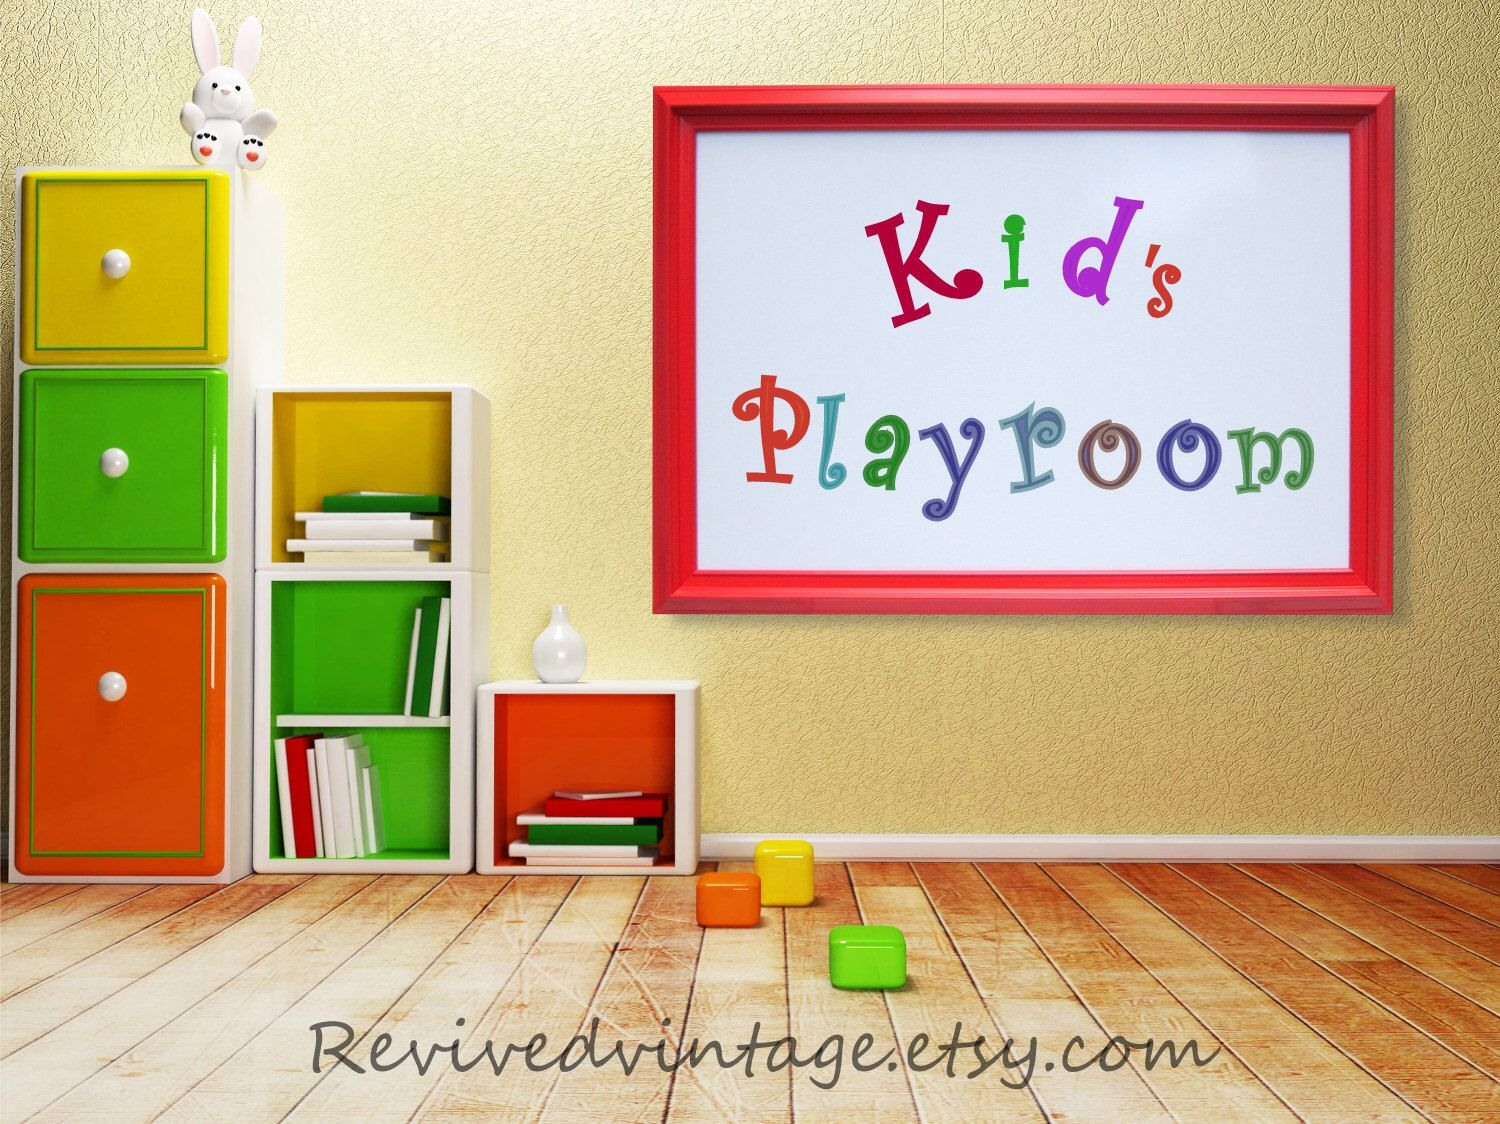 Magnetic DRY ERASE BOARD For Sale Kids Playroom Decor Organization ...